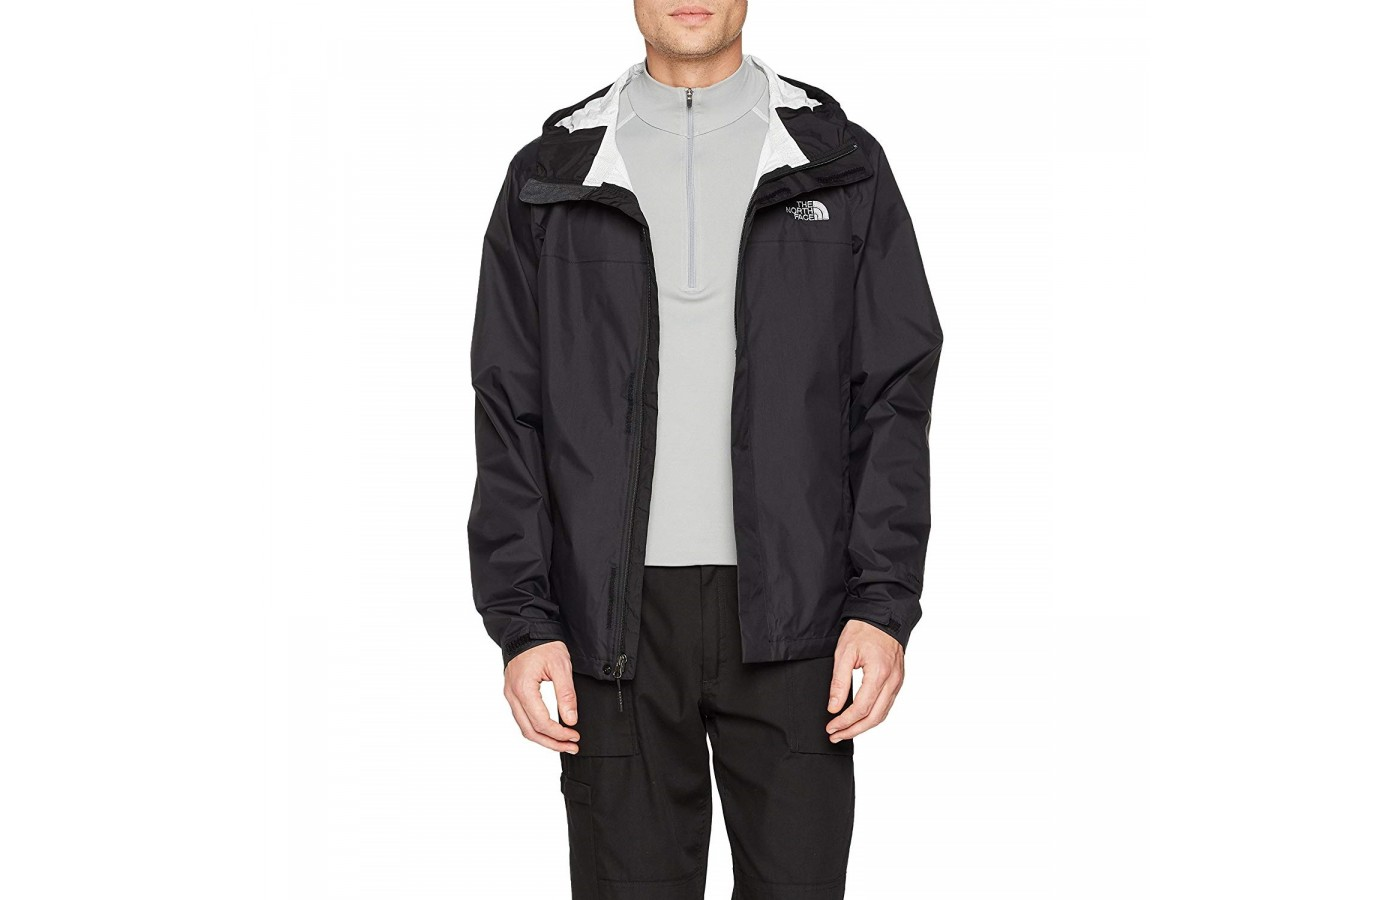 The North Face Venture 2 is unlined and packable making it easy to travel with.